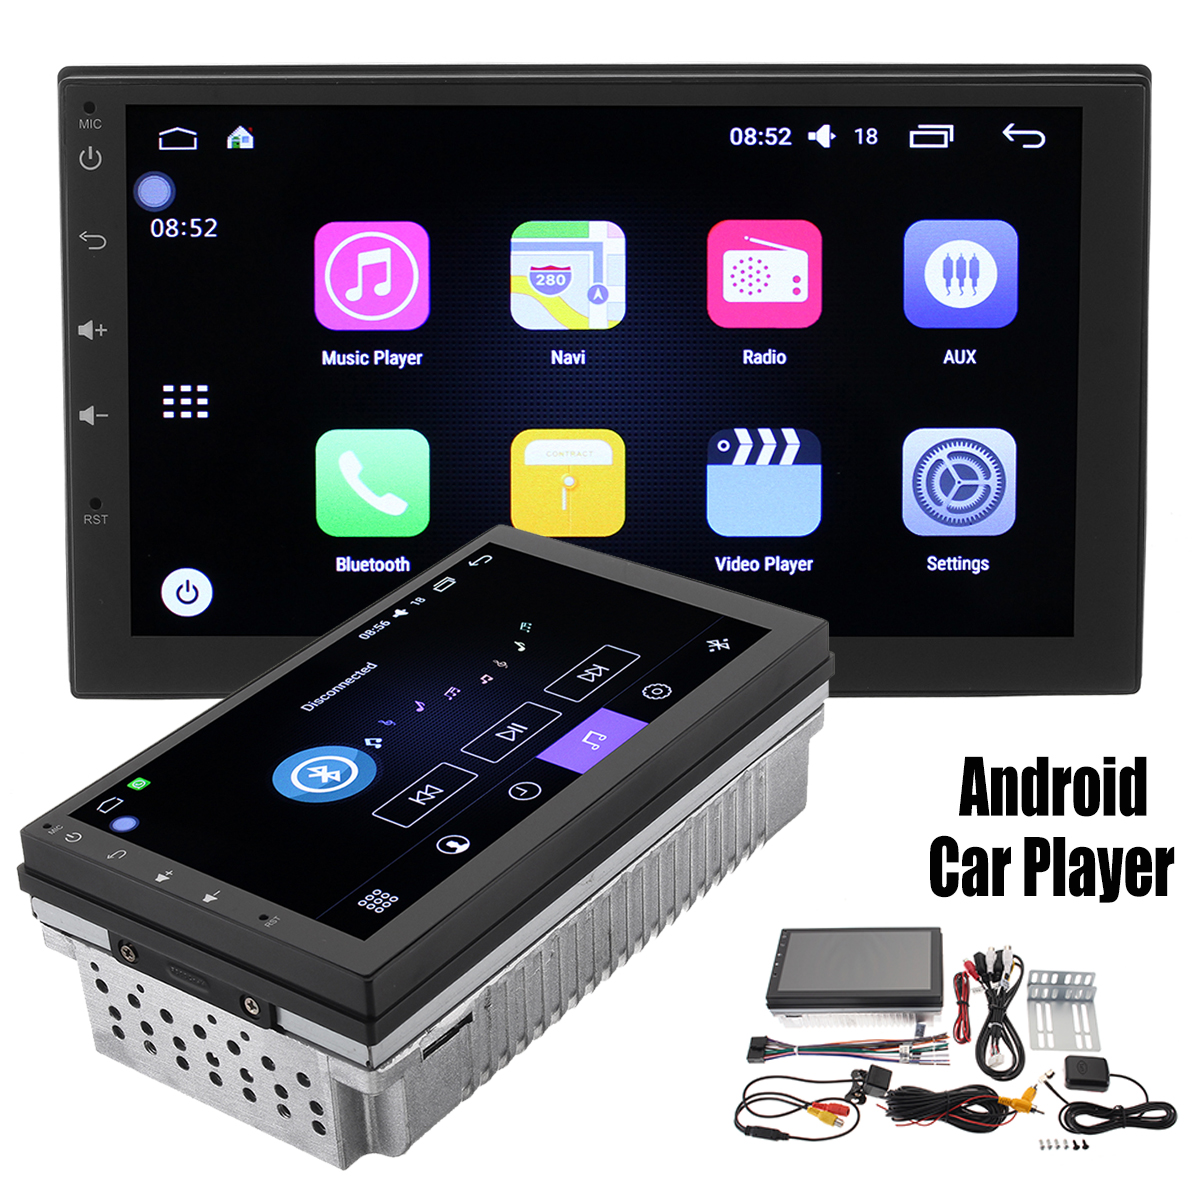 Quad Core Android 6.0 WIFI 7 Inch Double 2 DIN Car MP5 Player